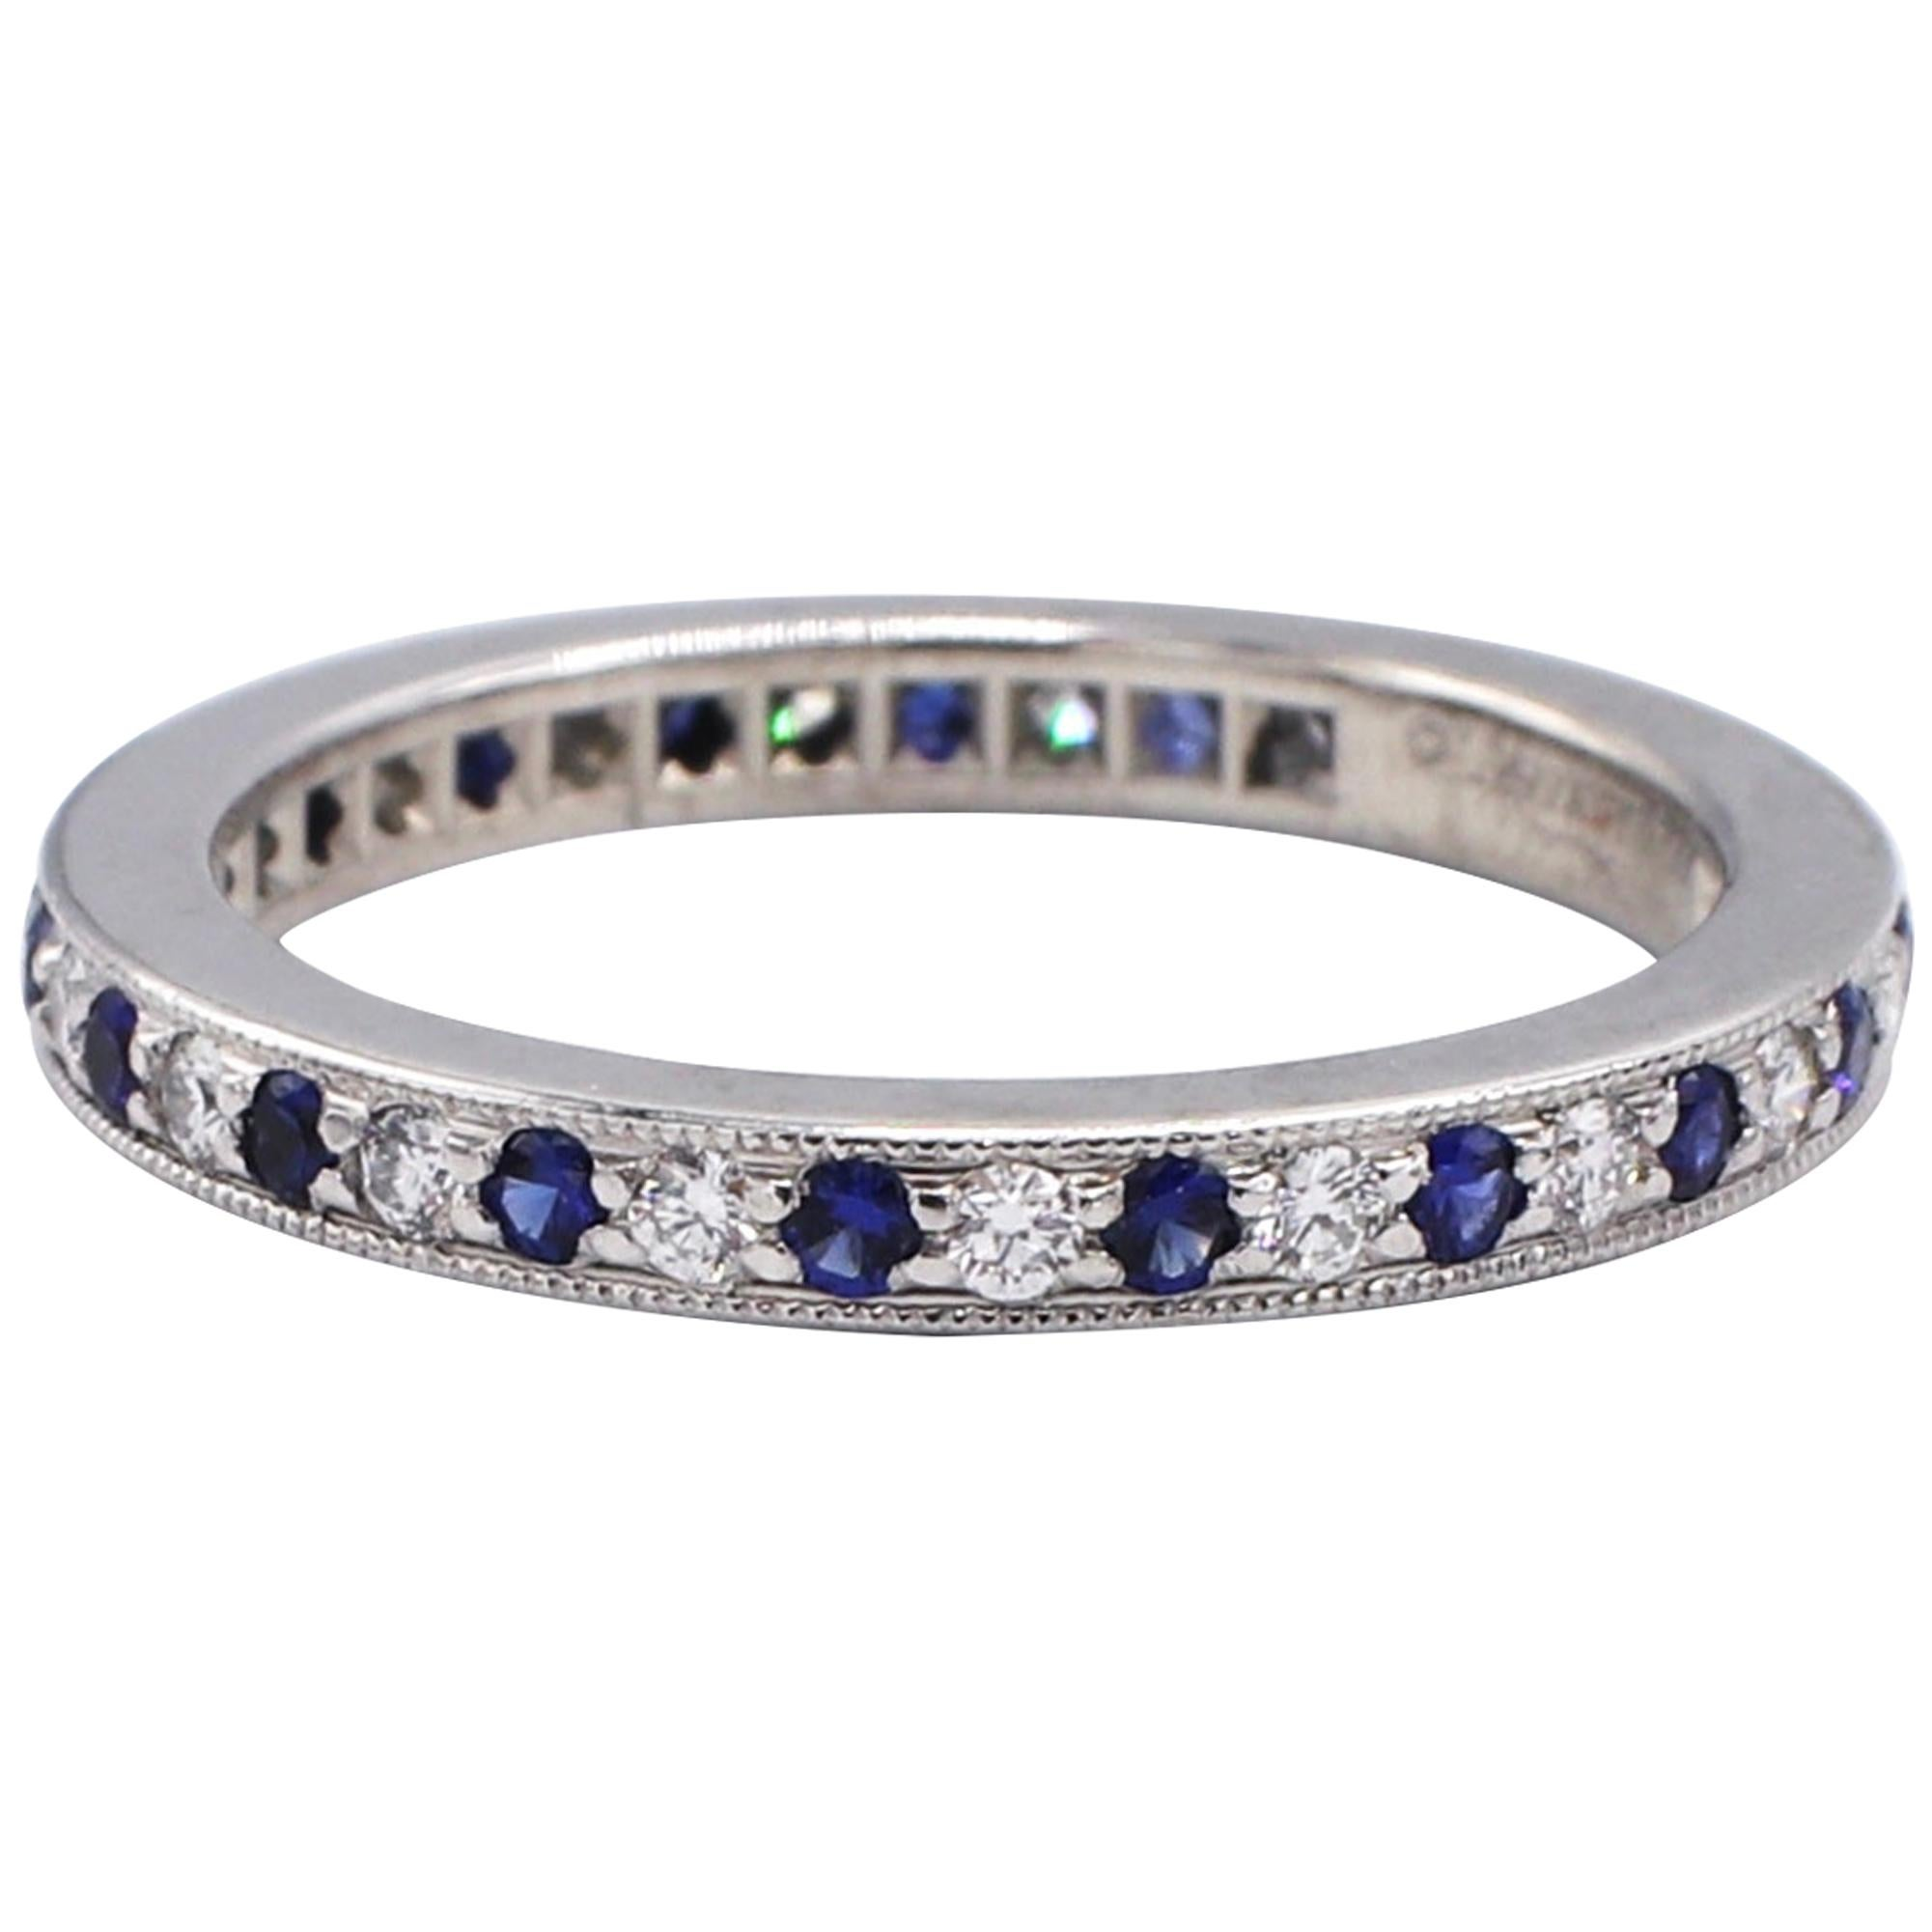 Tiffany & Co. Legacy Collection Platinum Diamond and Sapphire Band Ring